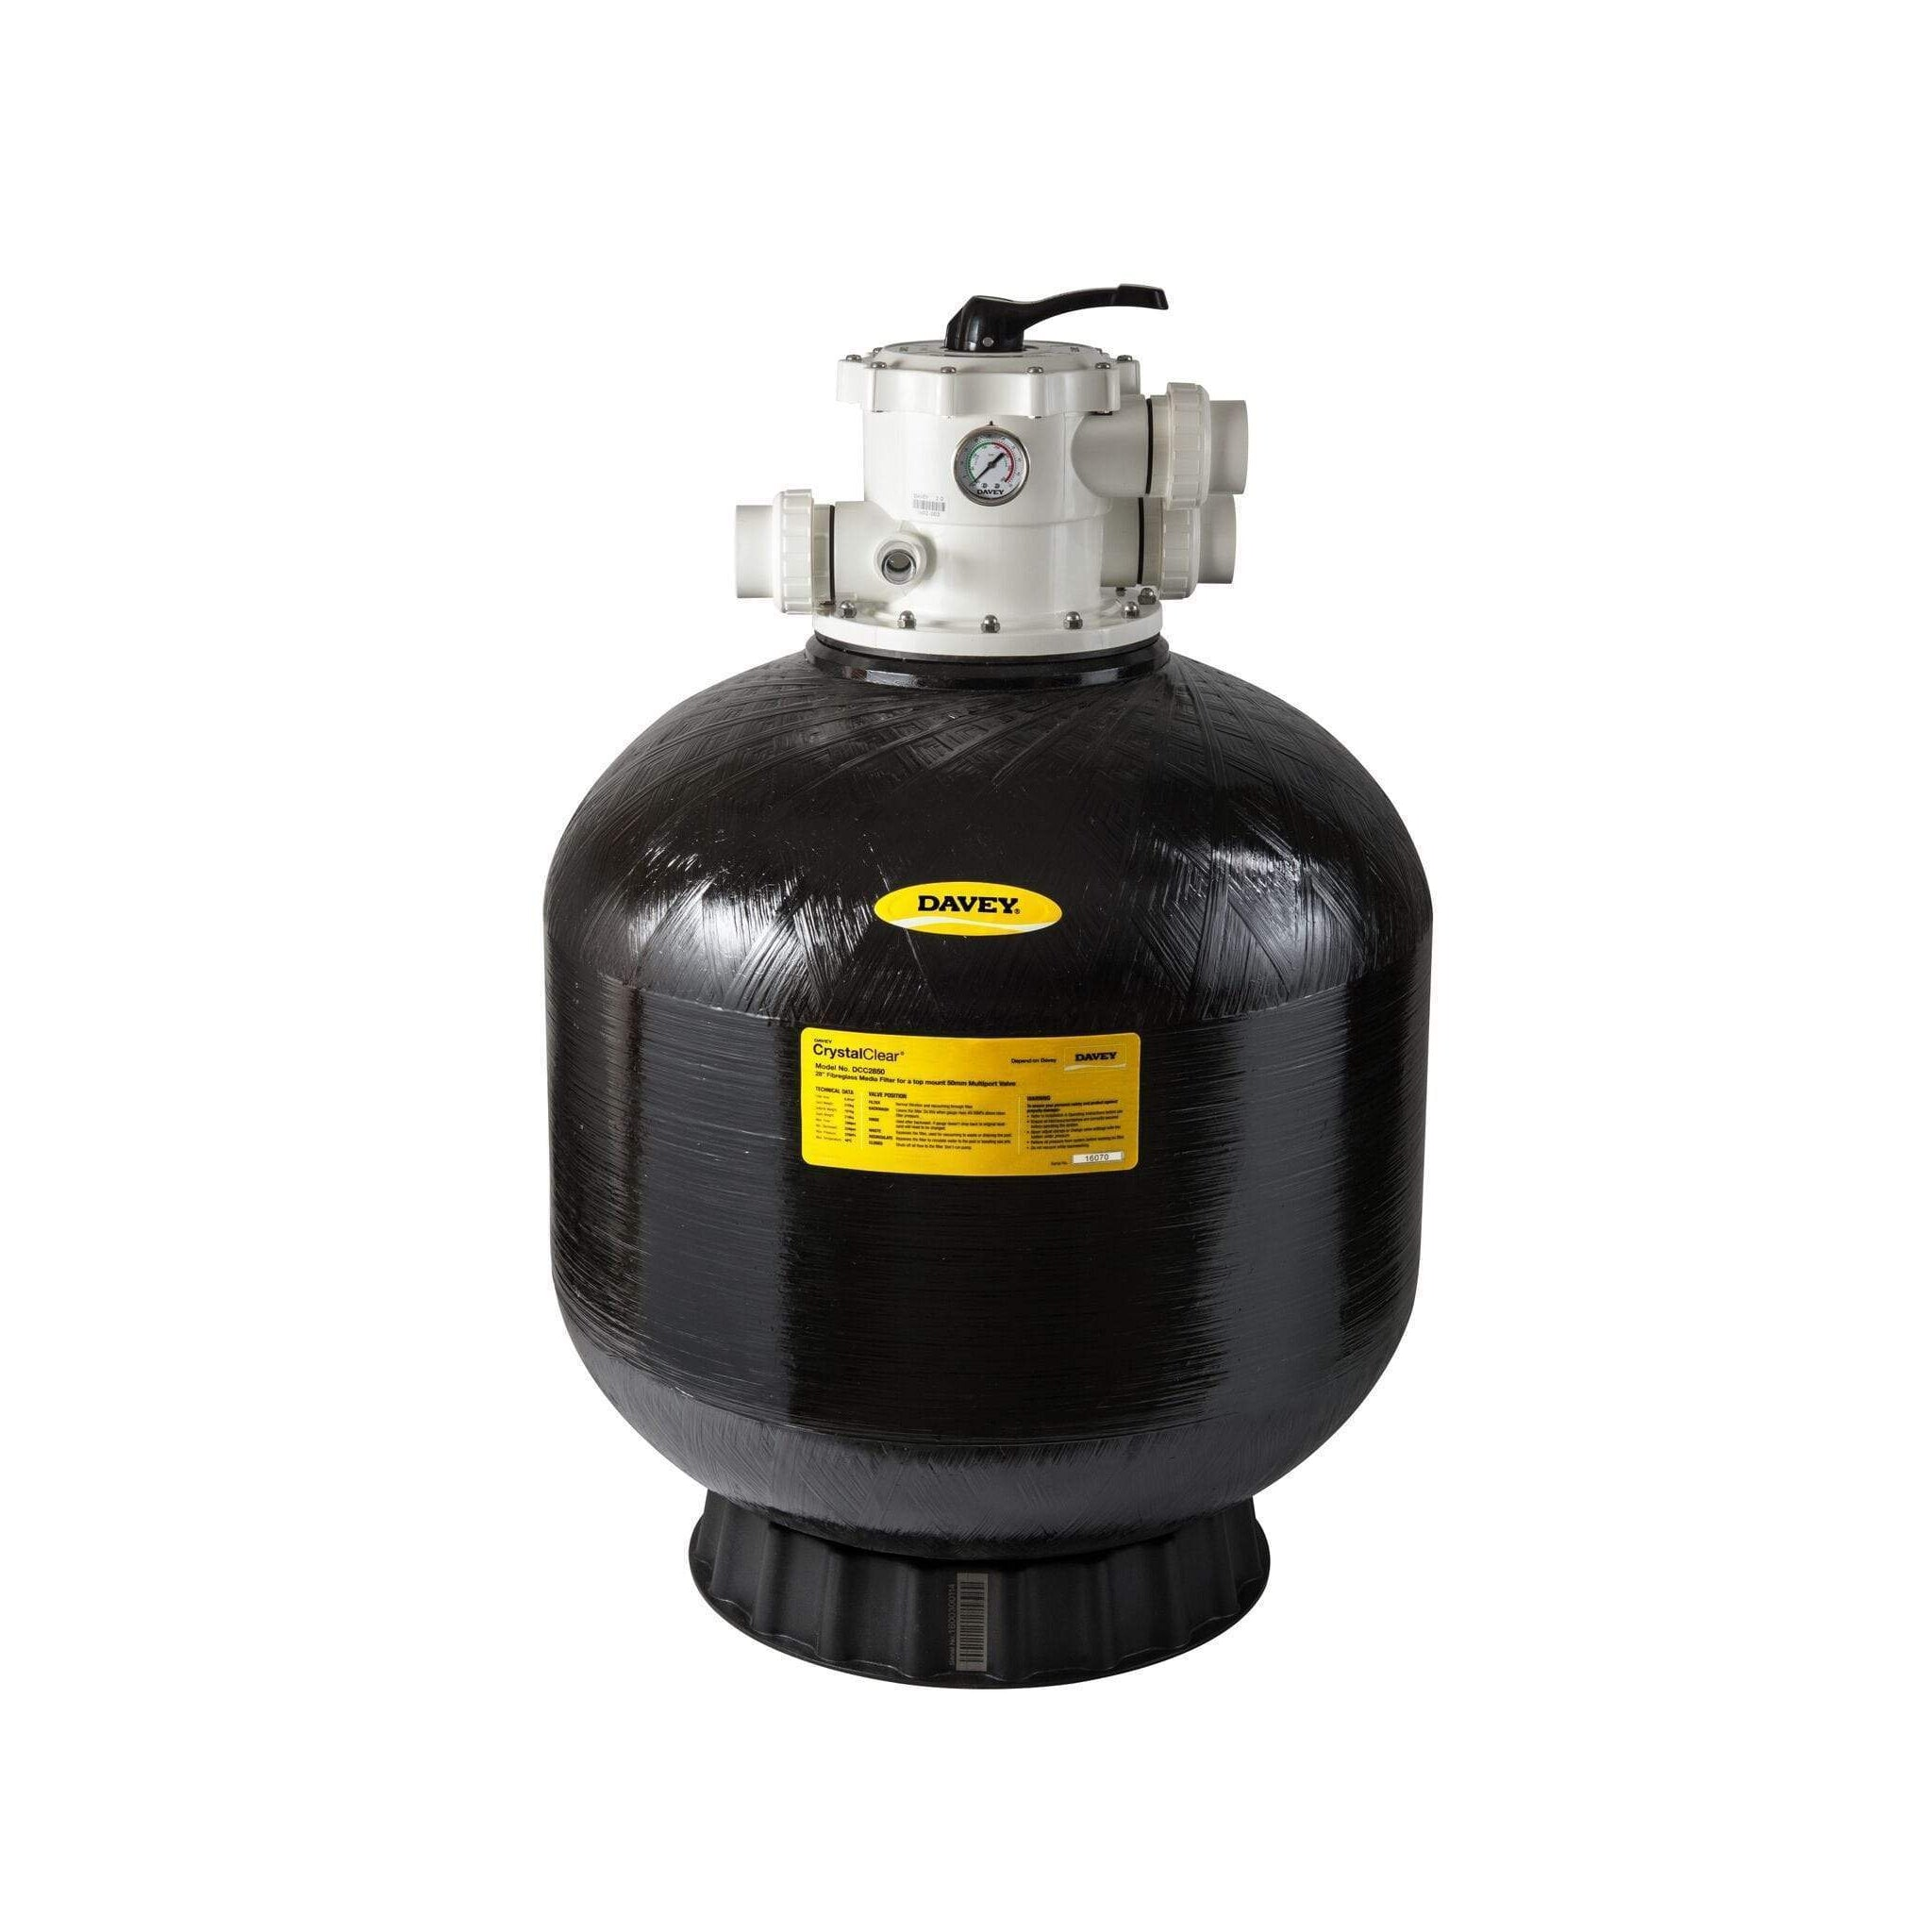 Davey Sand Filter Crystal Clear CCF 28inch 50mm-Mr Pool Man